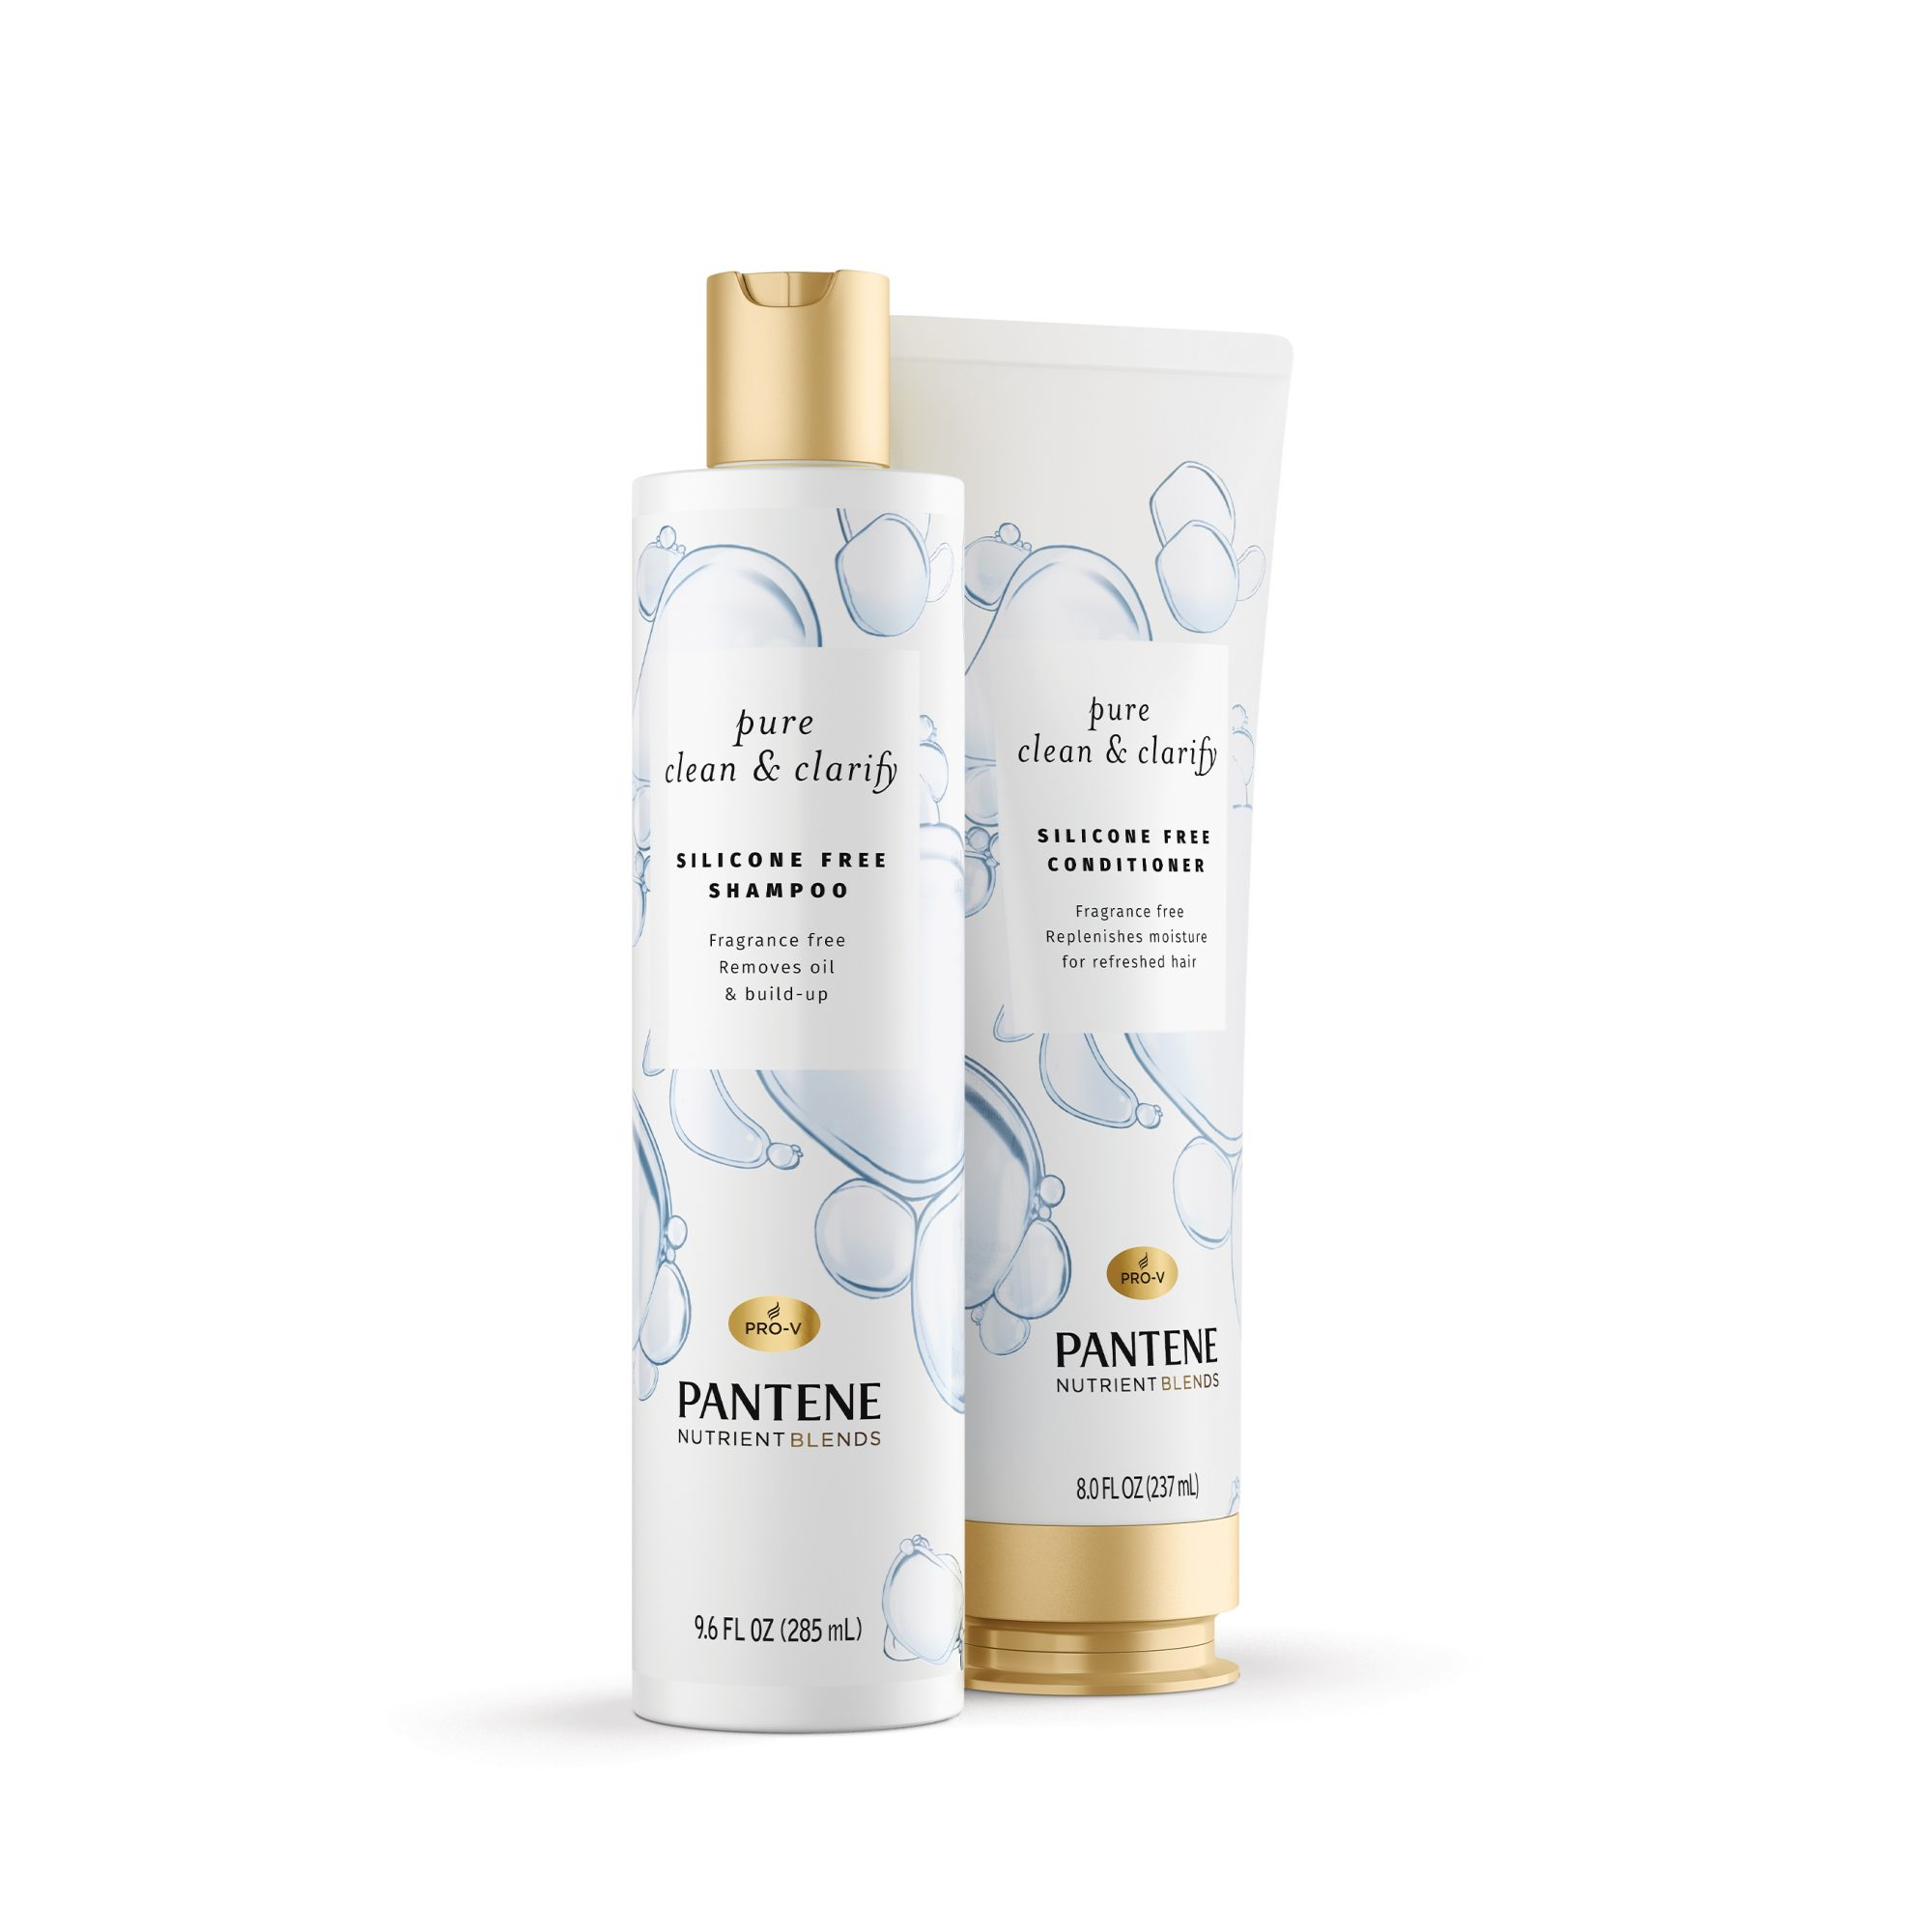 Beauty-Awards-Hair-Pantene-Nutrient-Blends-Pure-Clean-Clarify-Silicone Free-Collection